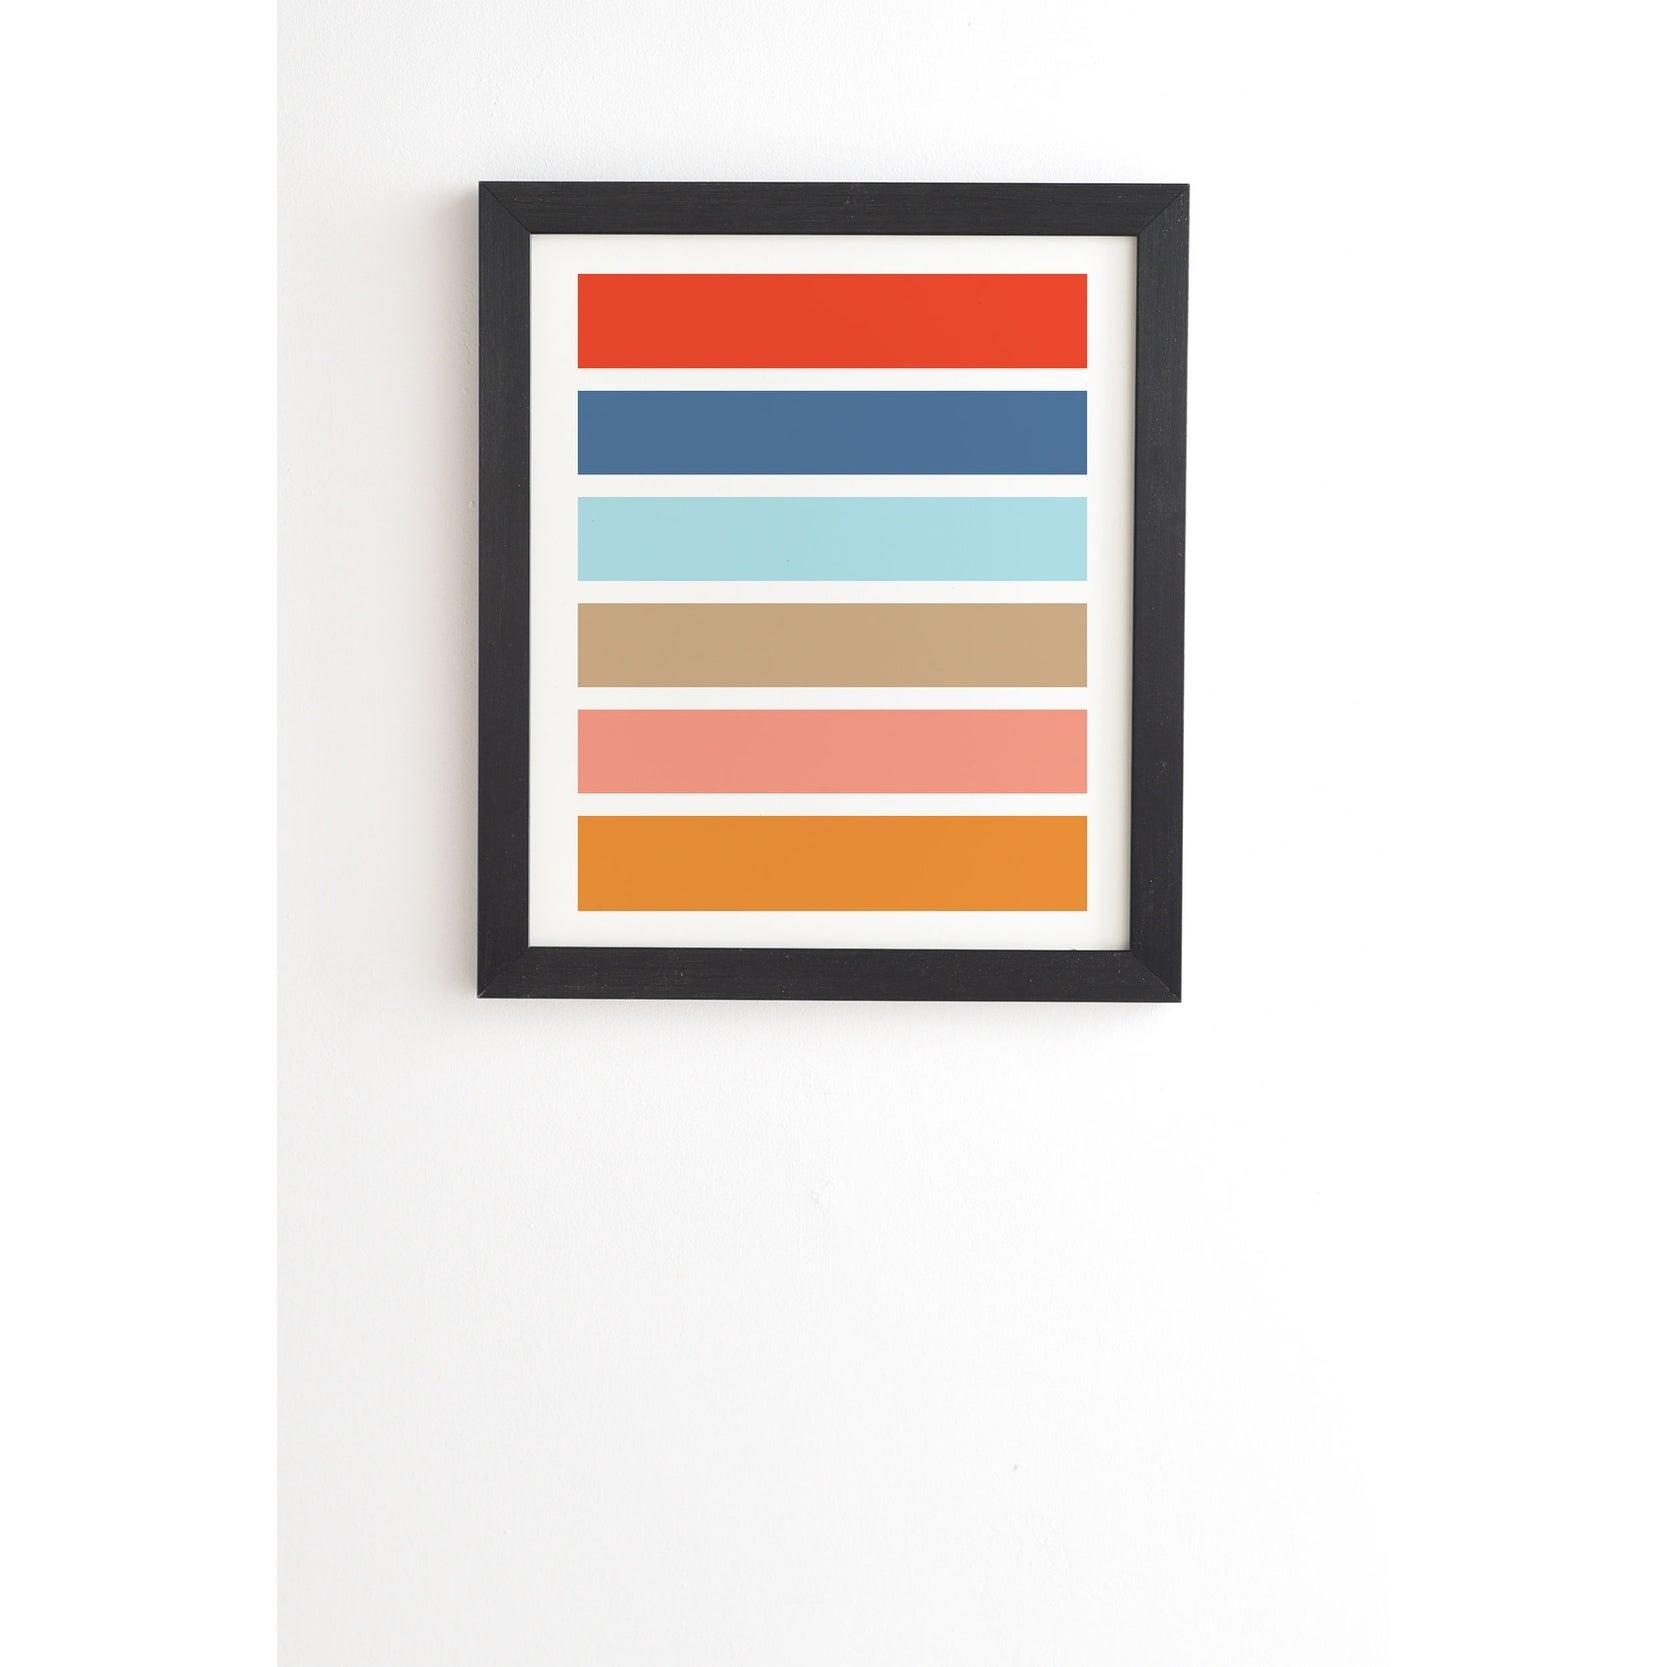 Deny Designs Six Stripes Framed Wall Art (3 Frame Colors) – Multi Color In Six Stripes Buffets (Gallery 22 of 30)